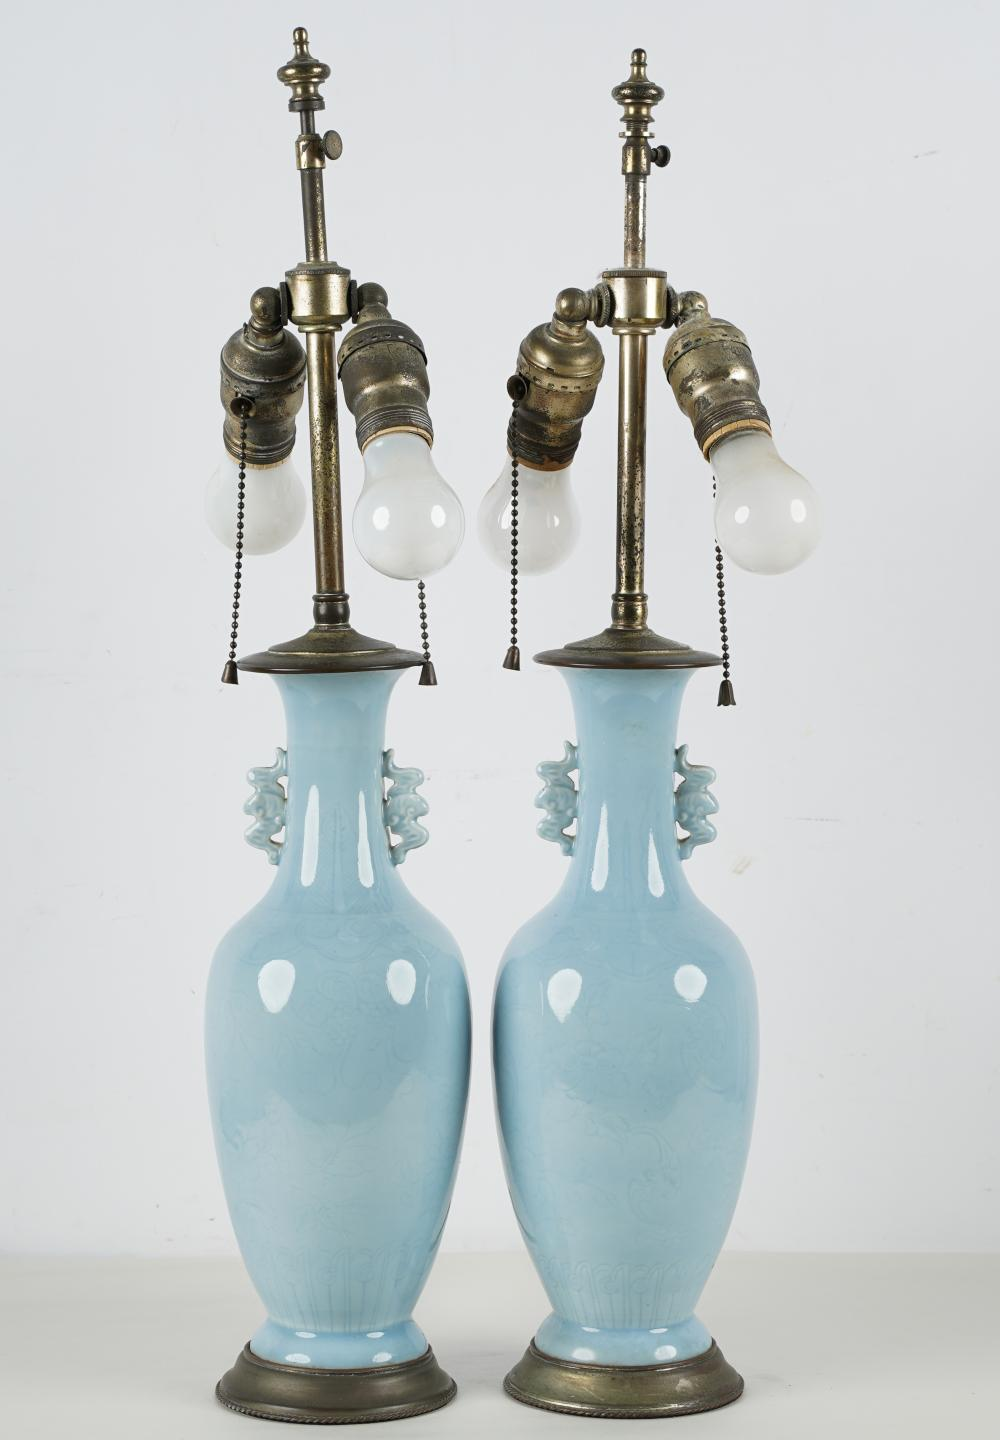 PAIR OF CHINESE PALE BLUE PORCELAIN VASES